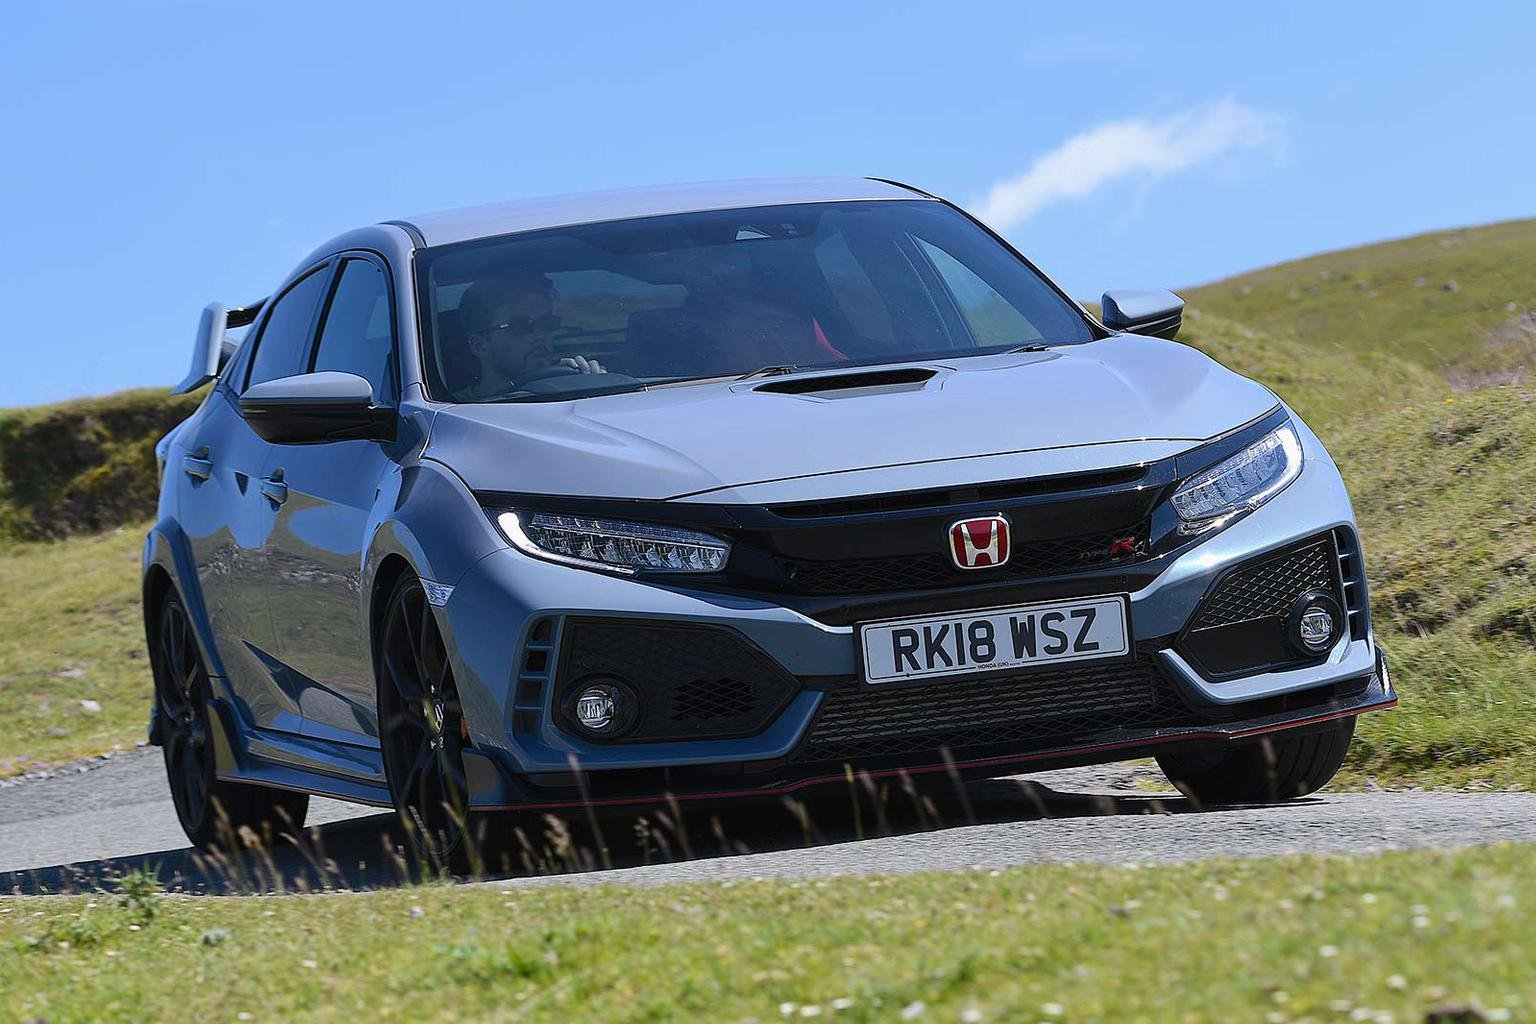 New Renault Megane RS vs Honda Civic Type R vs Volkswagen Golf R